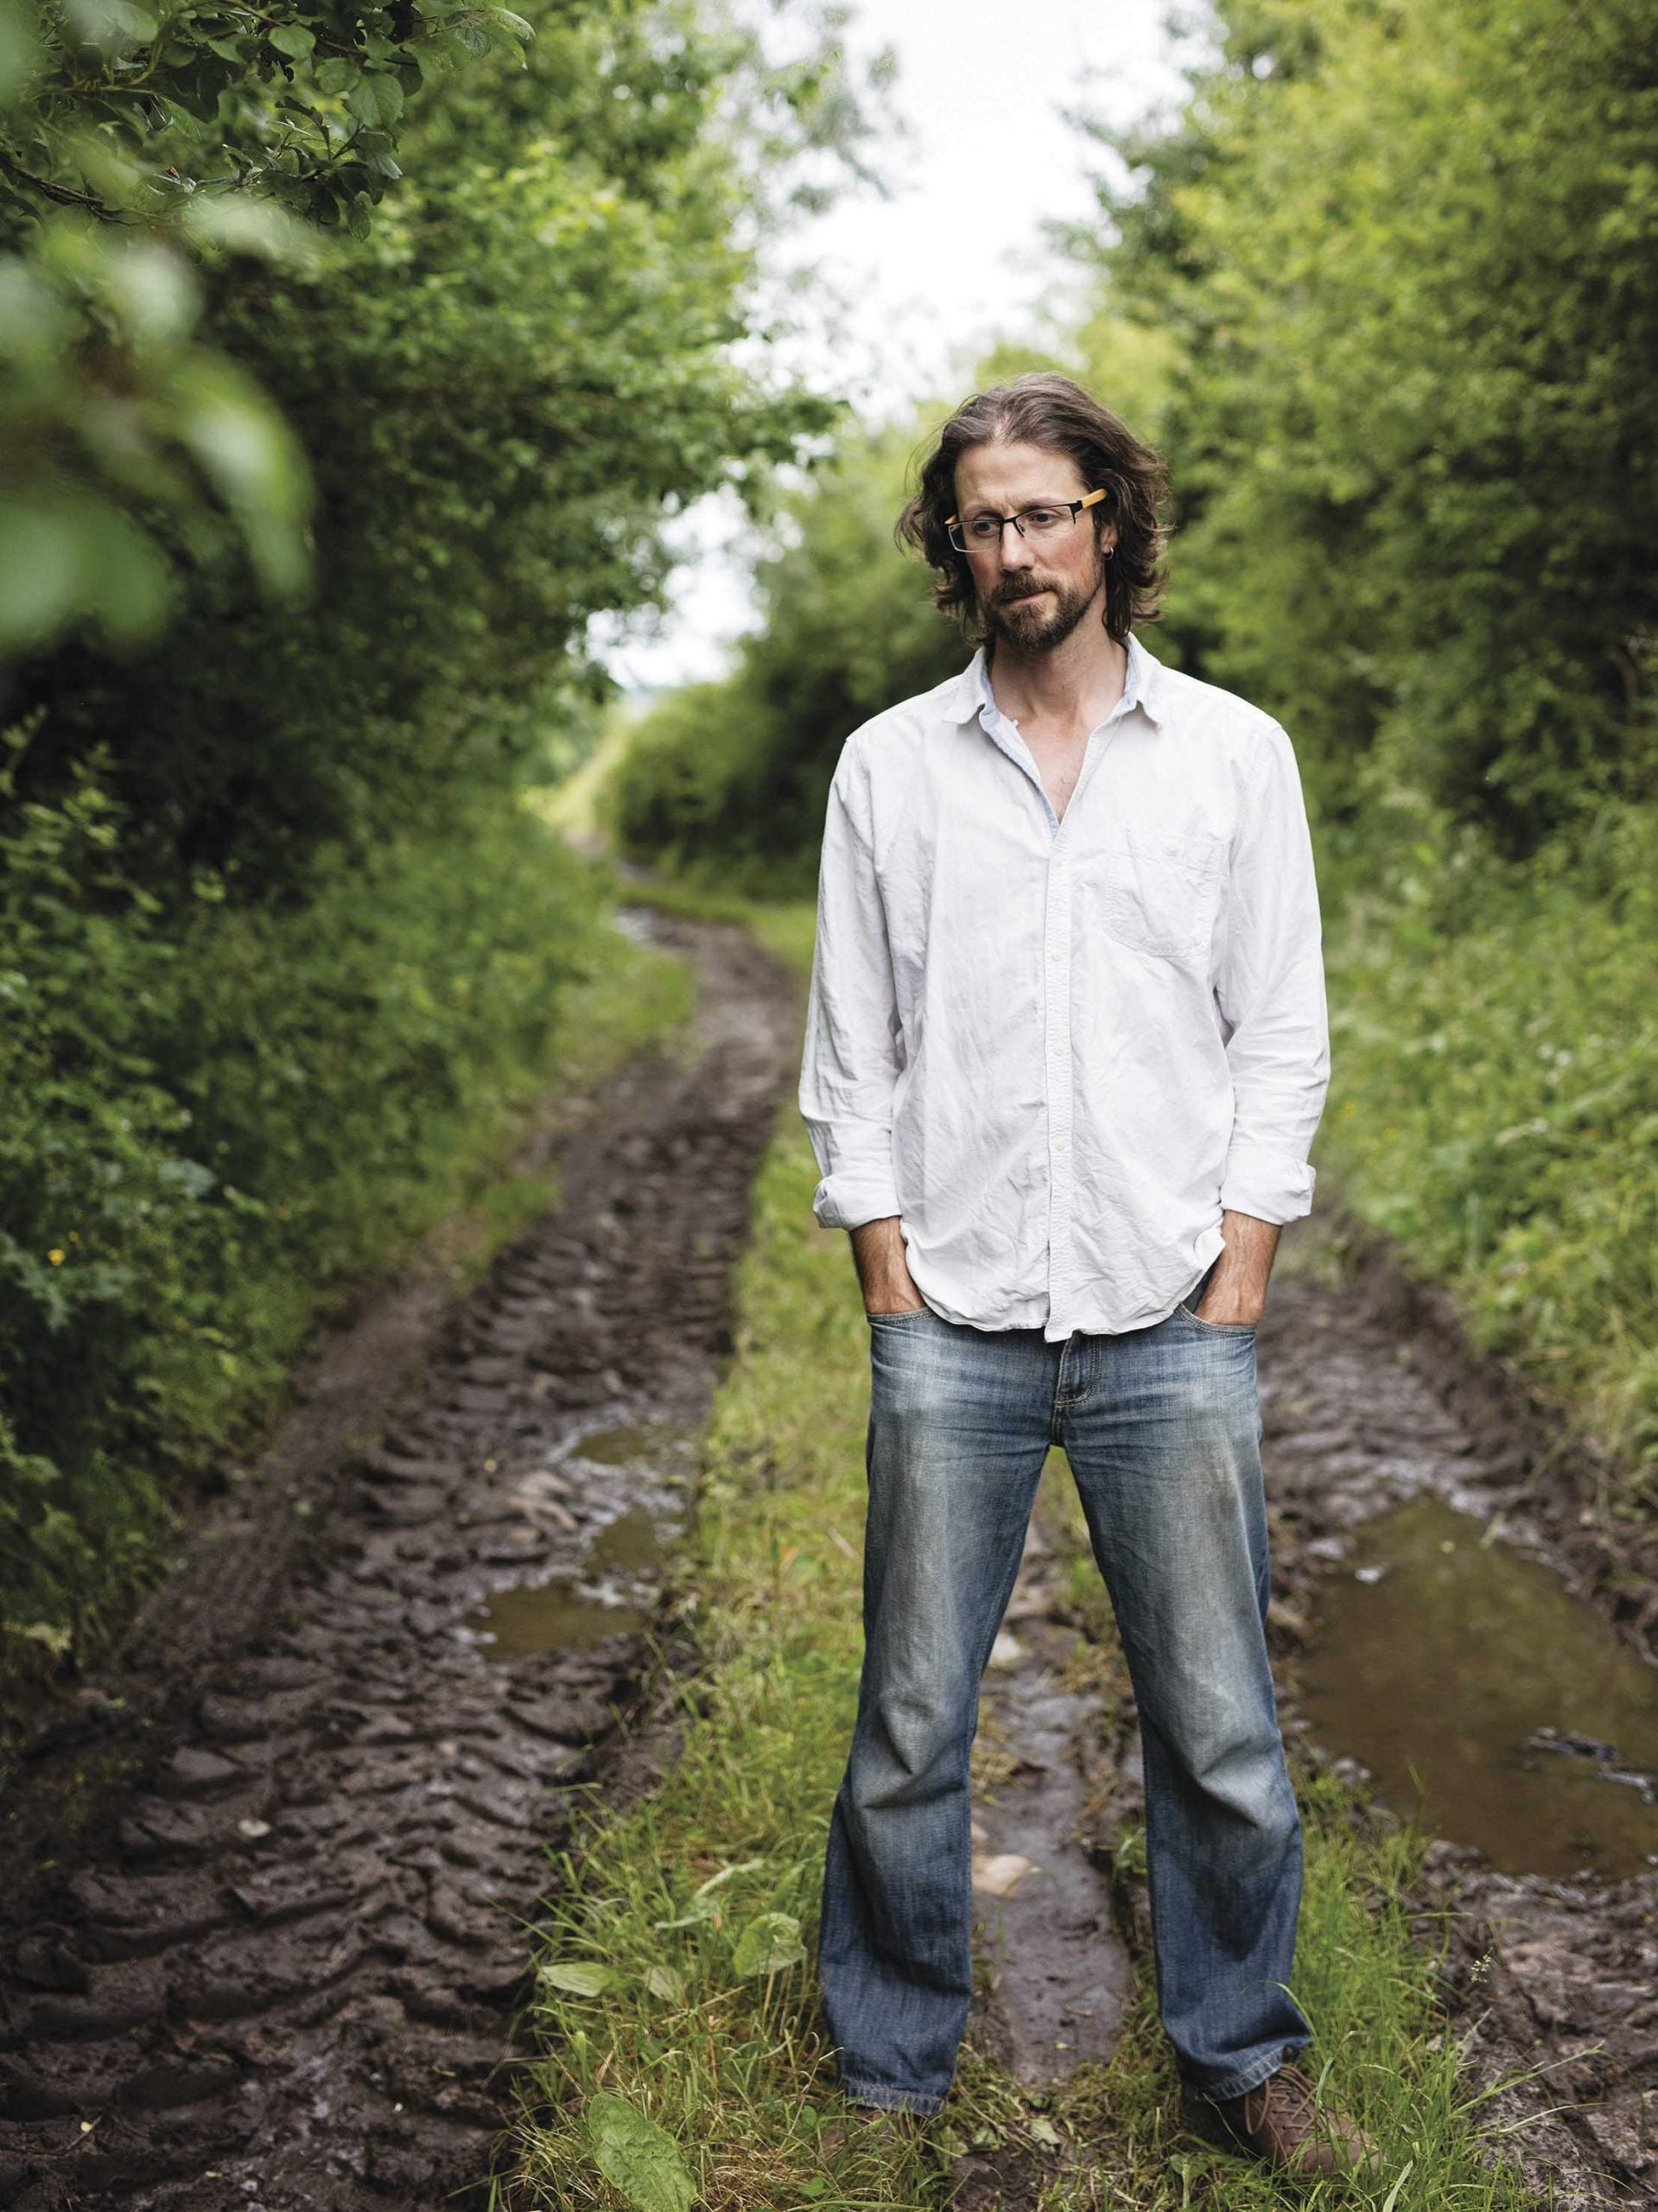 Paul Kingsnorth and the new climate fiction